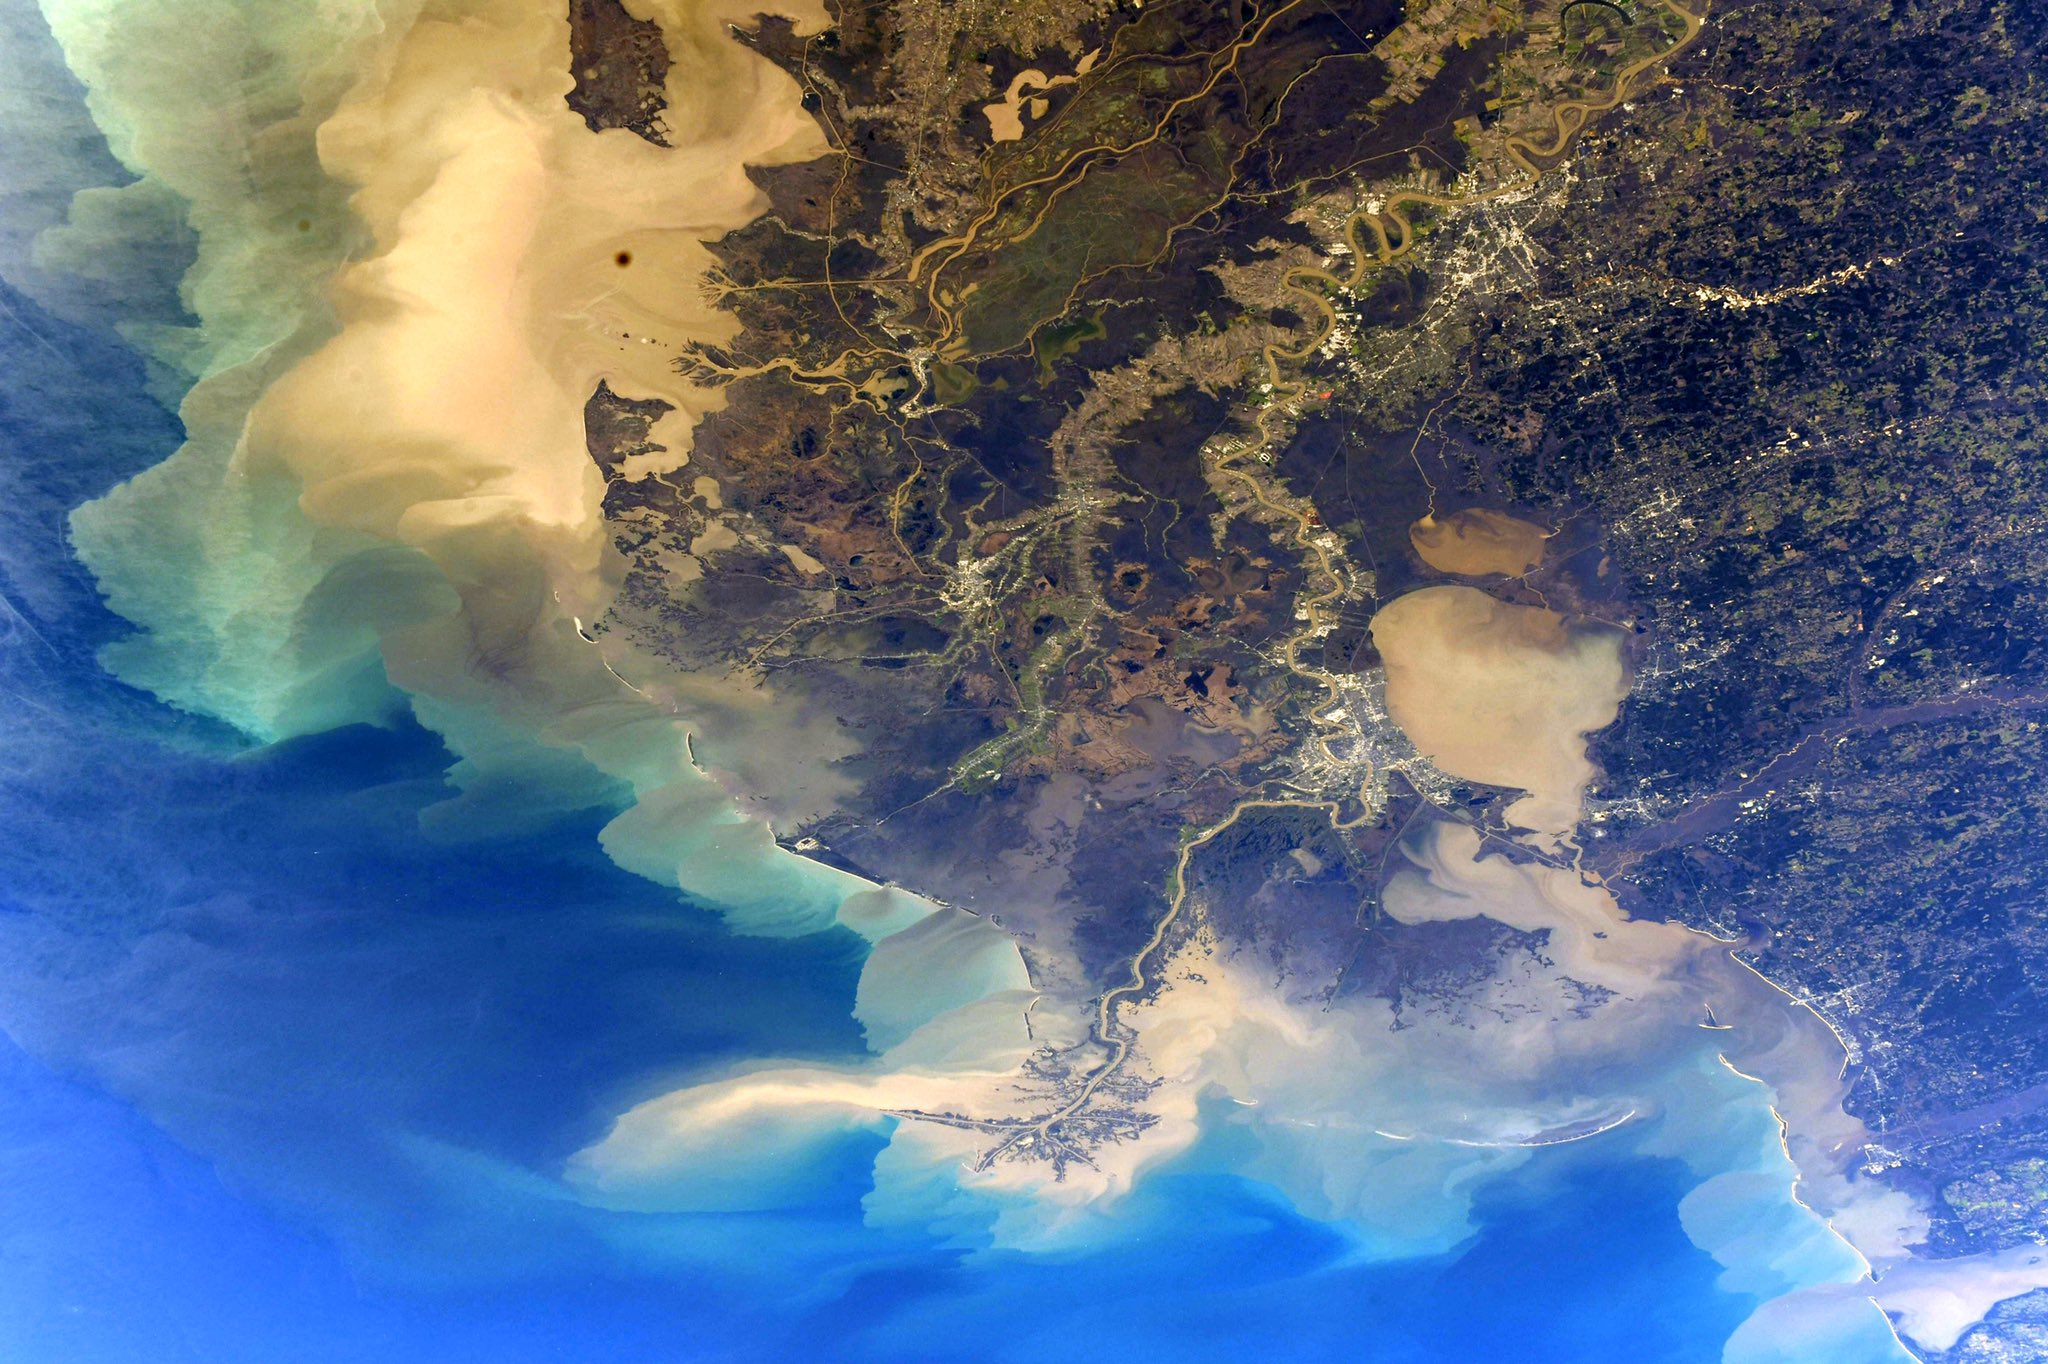 """Like somebody spilled their watercolors"": Spectacular photo of Louisiana captured by NASA astronaut from ISS"